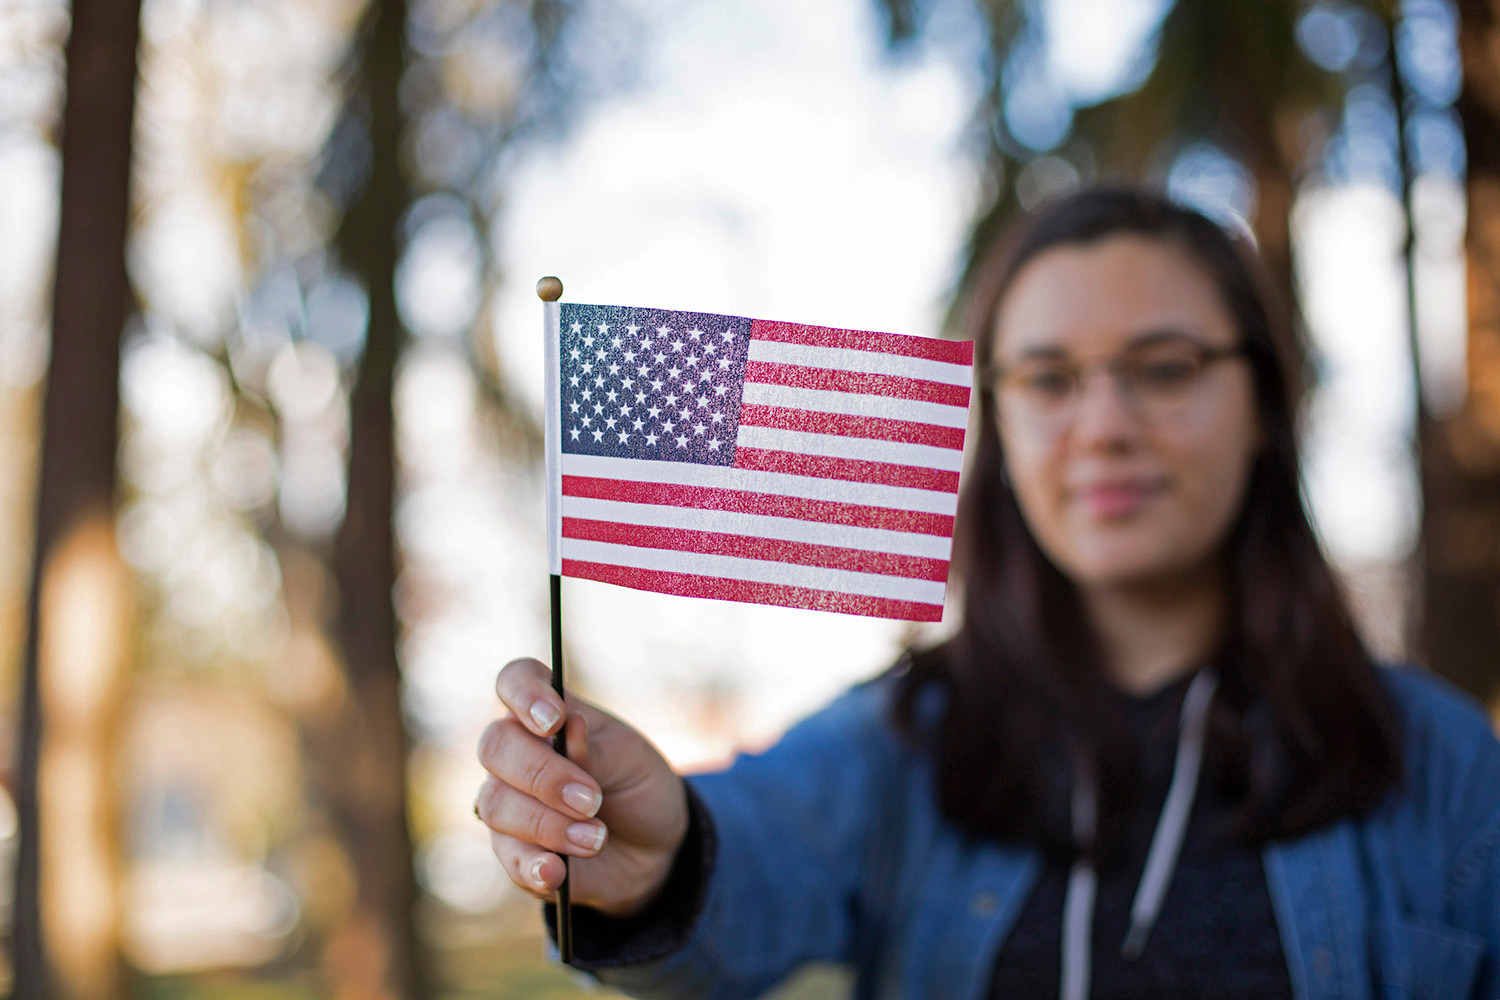 Sara Borgeau holds the American flag she recieved with her citizenship package when she and her family, all from Canada, became American citizens. Her father made sure they were all naturalized before the 2016 elections so they could vote for the first time as Americans. 2019.